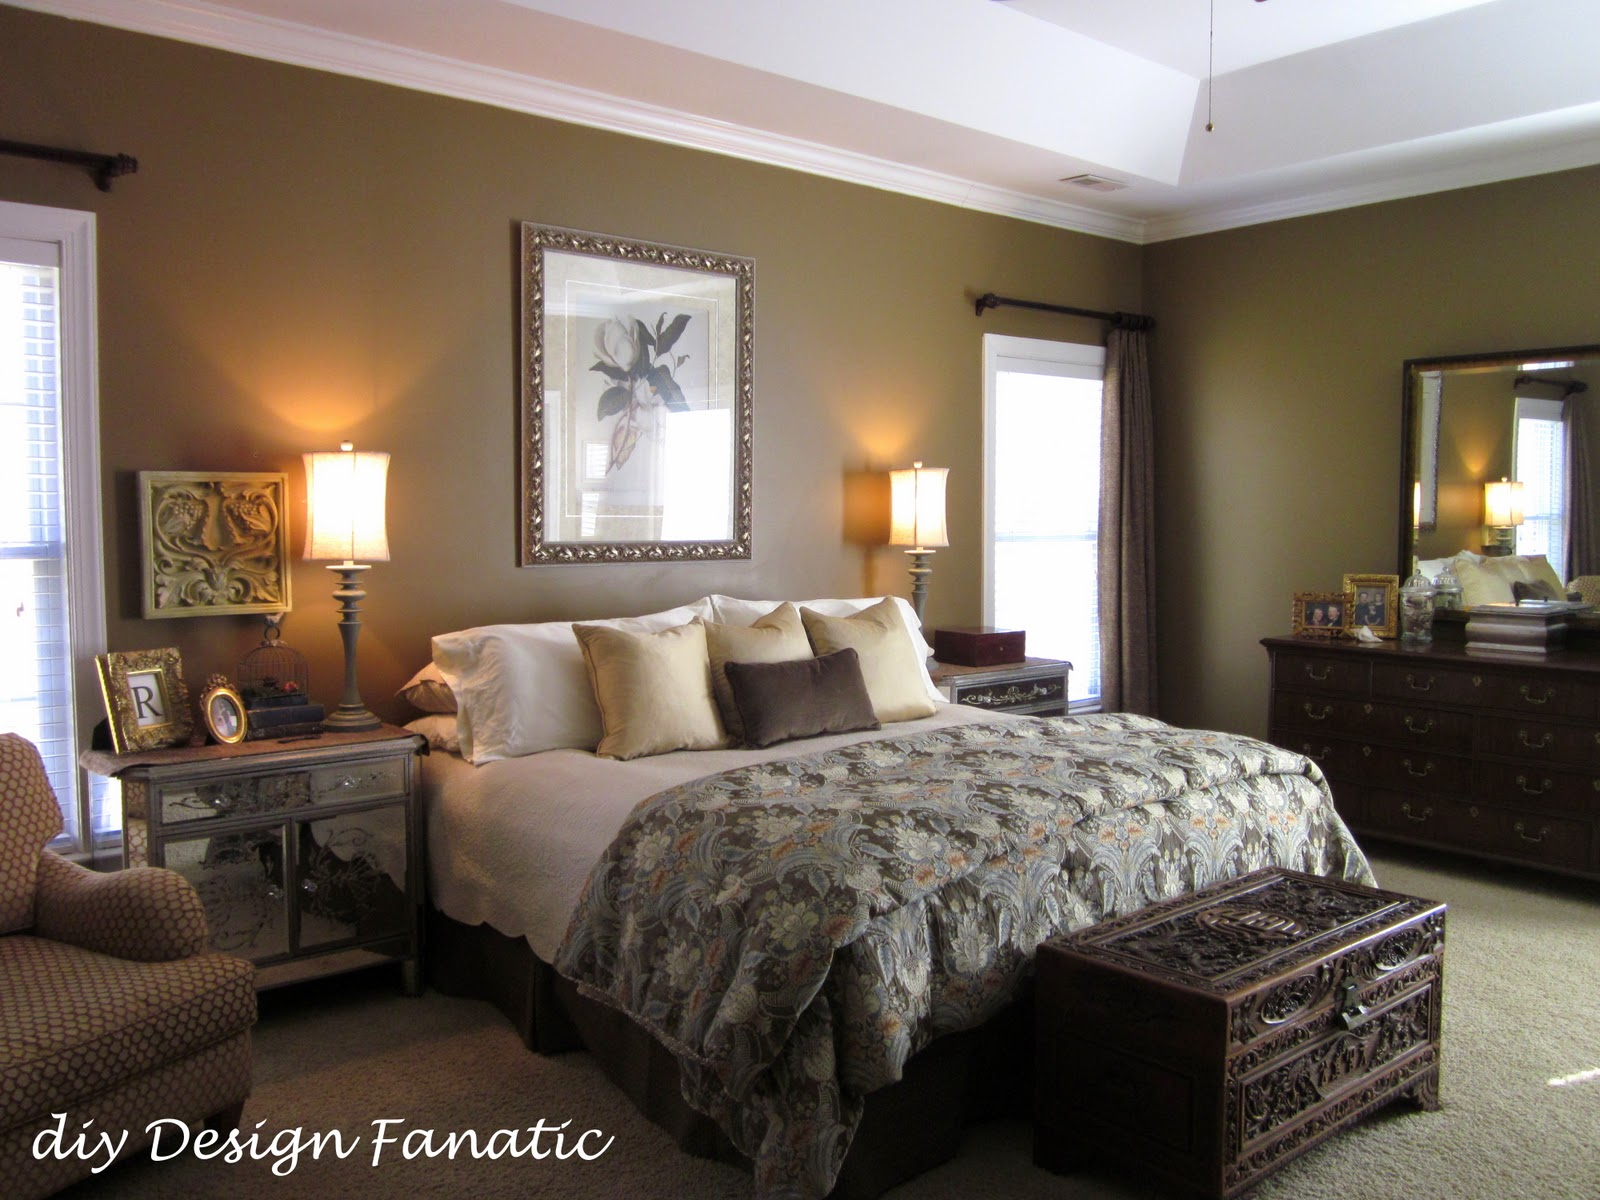 Diy Design Fanatic Master Bedroom